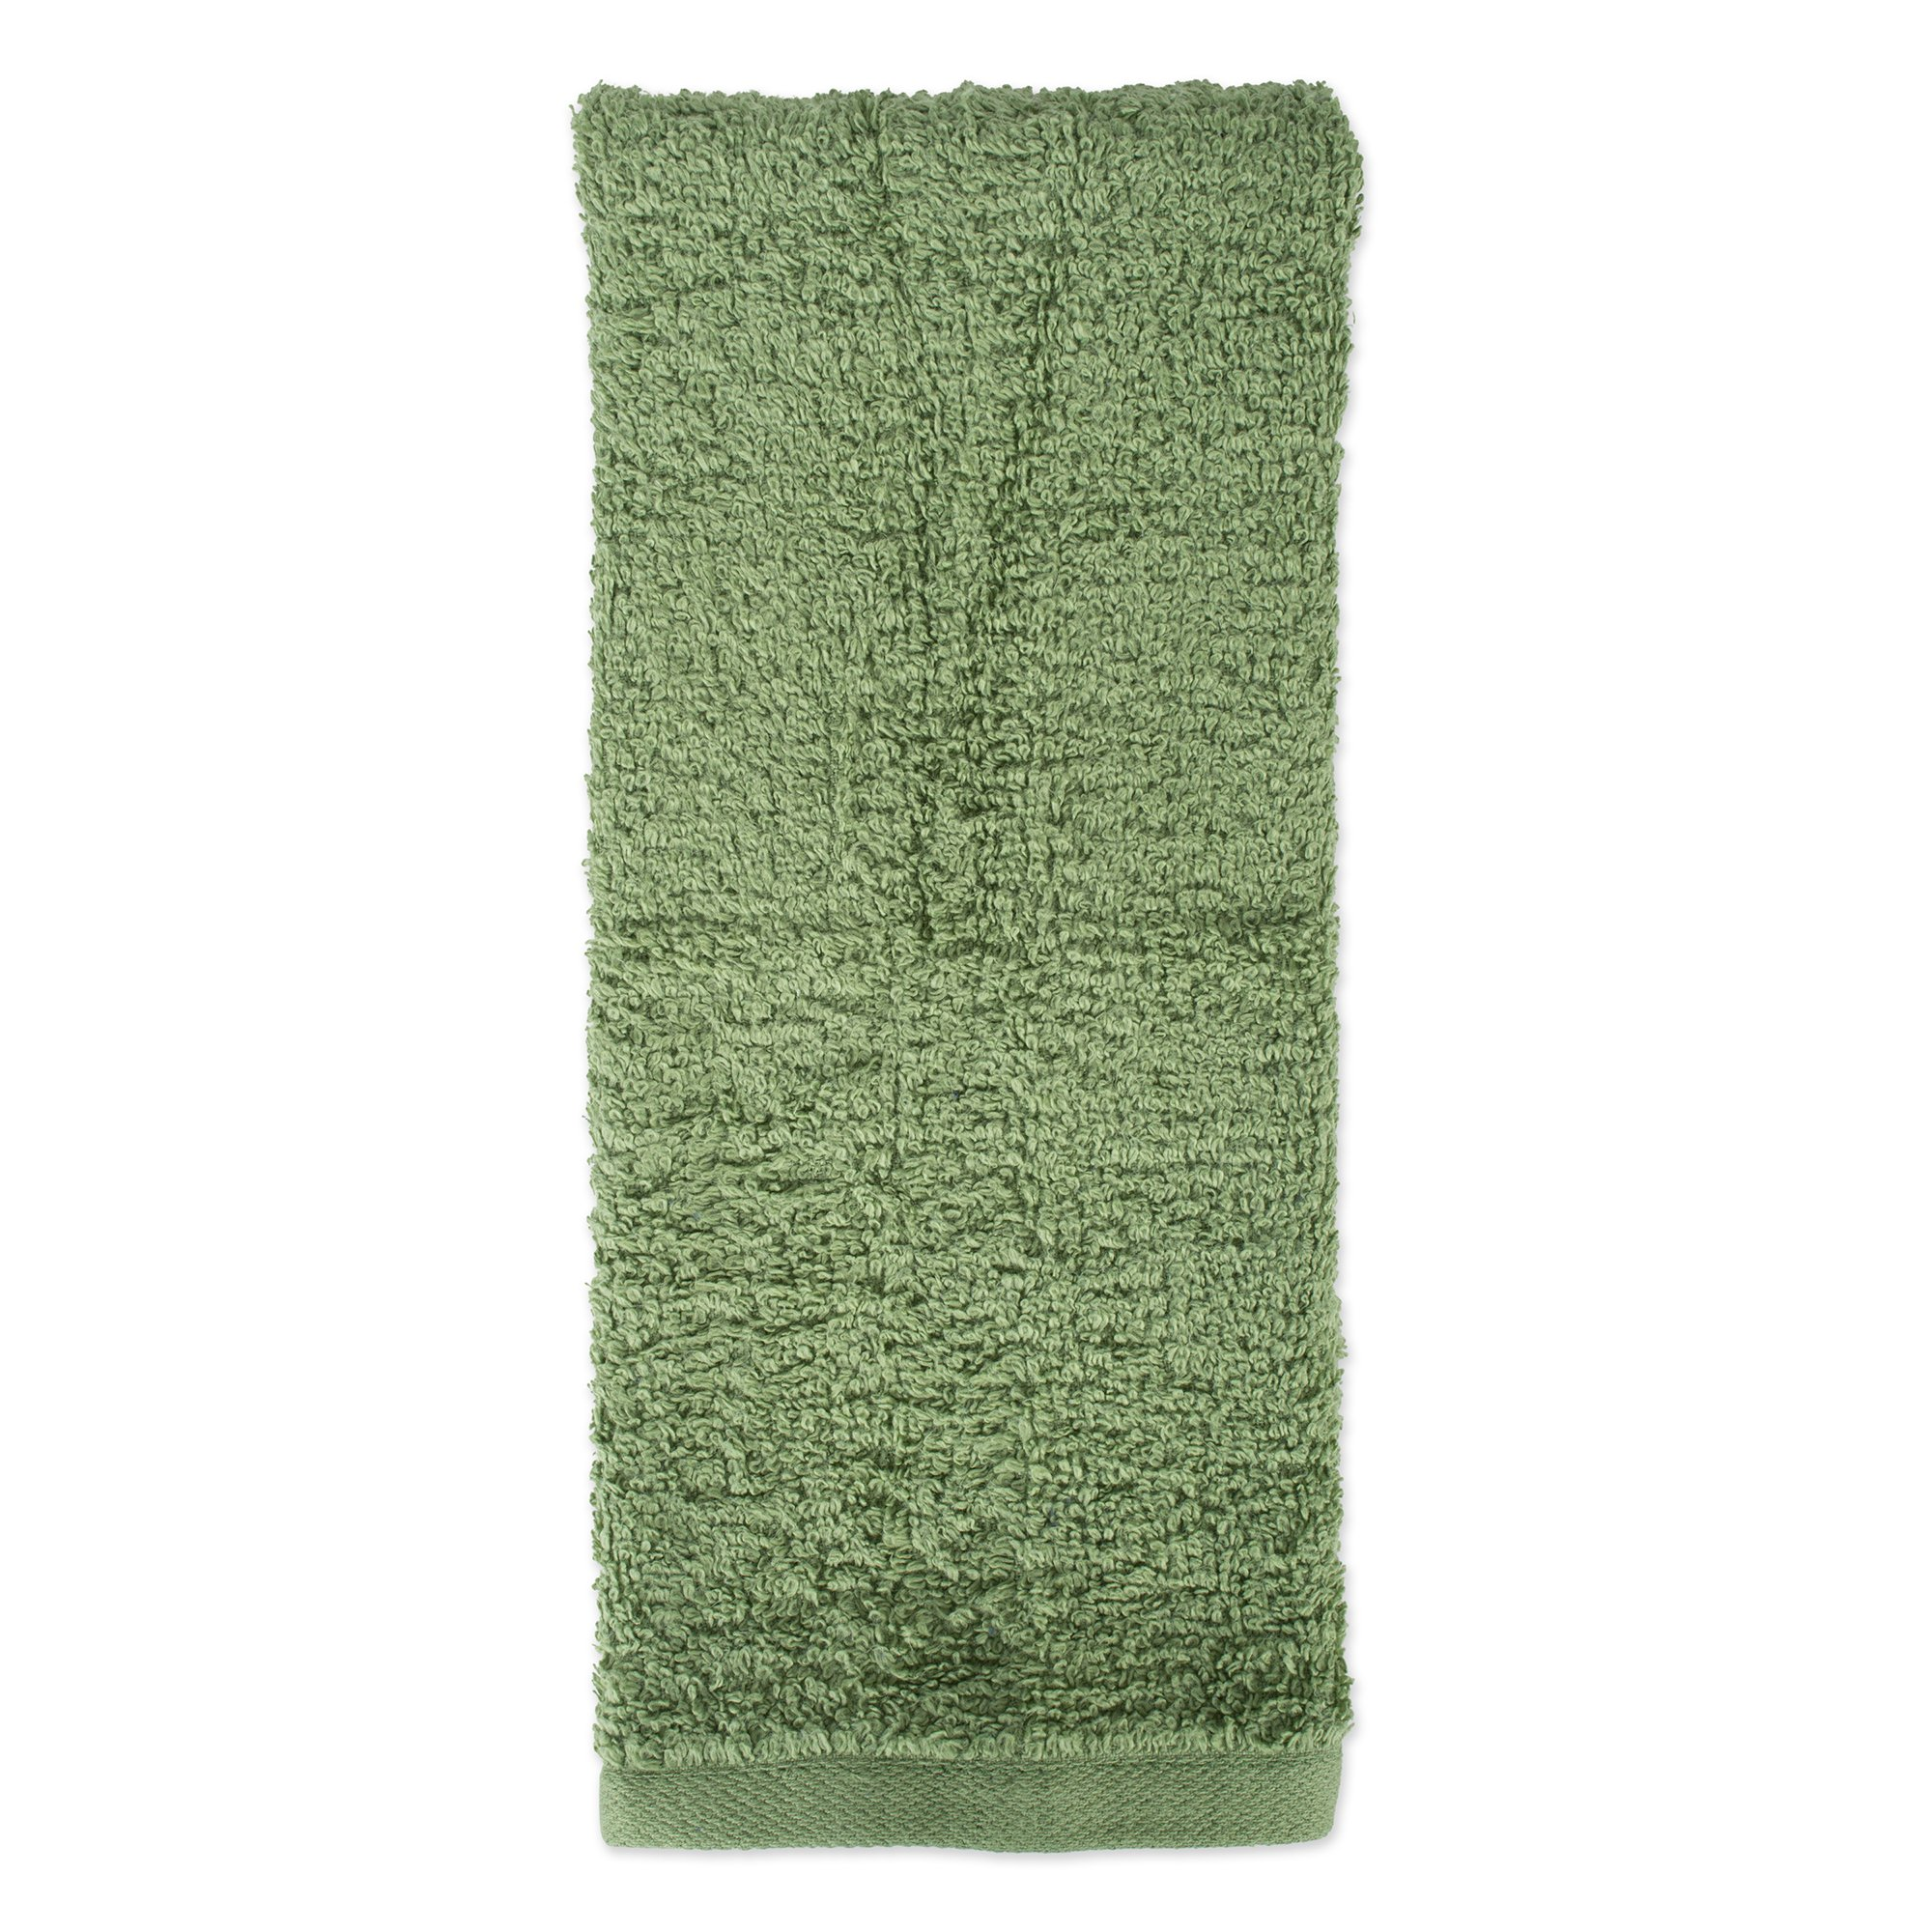 J&M Home Fashions Premium 72-Piece Bulk Pack Cotton Hand Towel Set, 16x27, Hotel & Spa Quality, Super Soft and Ultra Absorbent for Commercial Business-Thyme Green